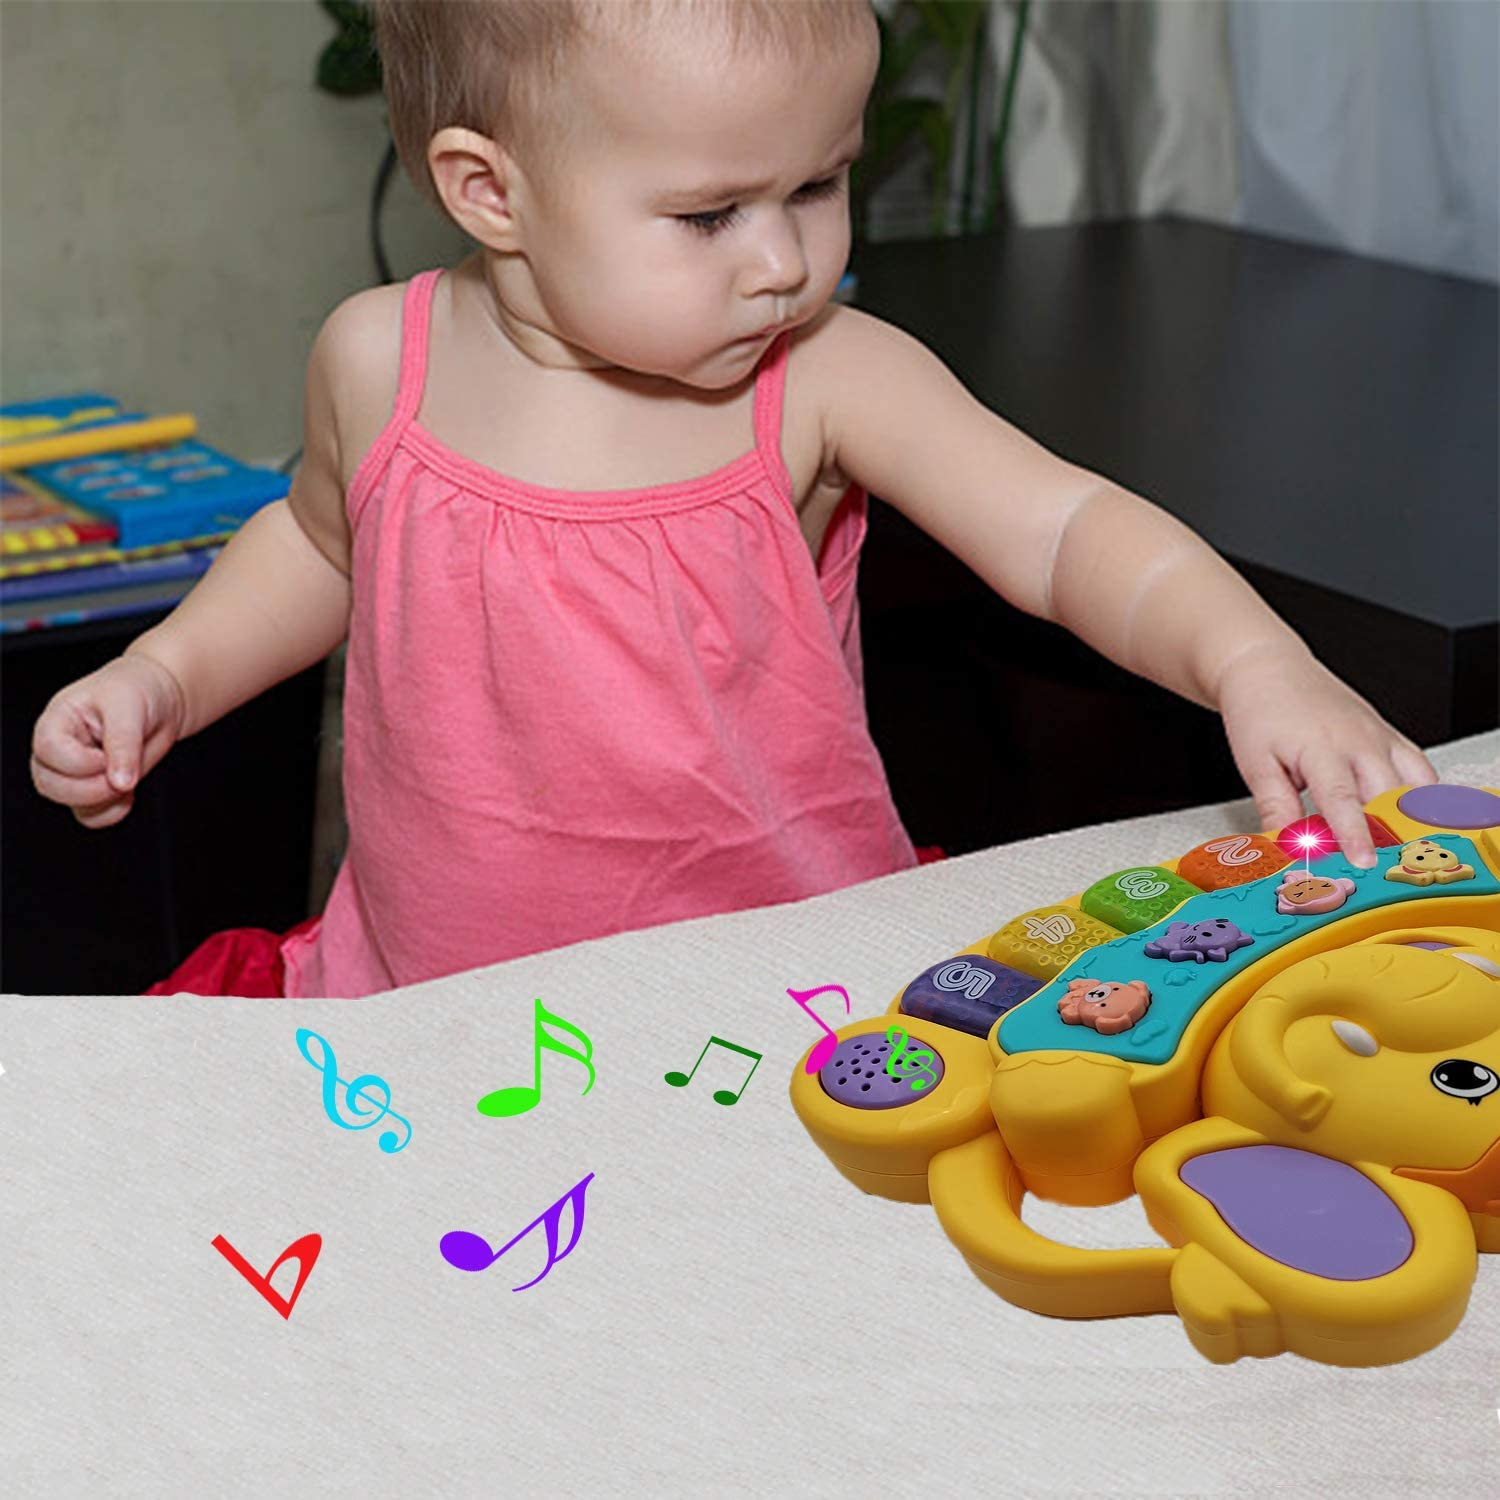 Piano Toys for 1-7 Year Old Baby Toddlers,Musical Toys for Toddlers 1-6 Toys Gift for 1-7 Year Old Girls Baby Toys 6 to 36 Months